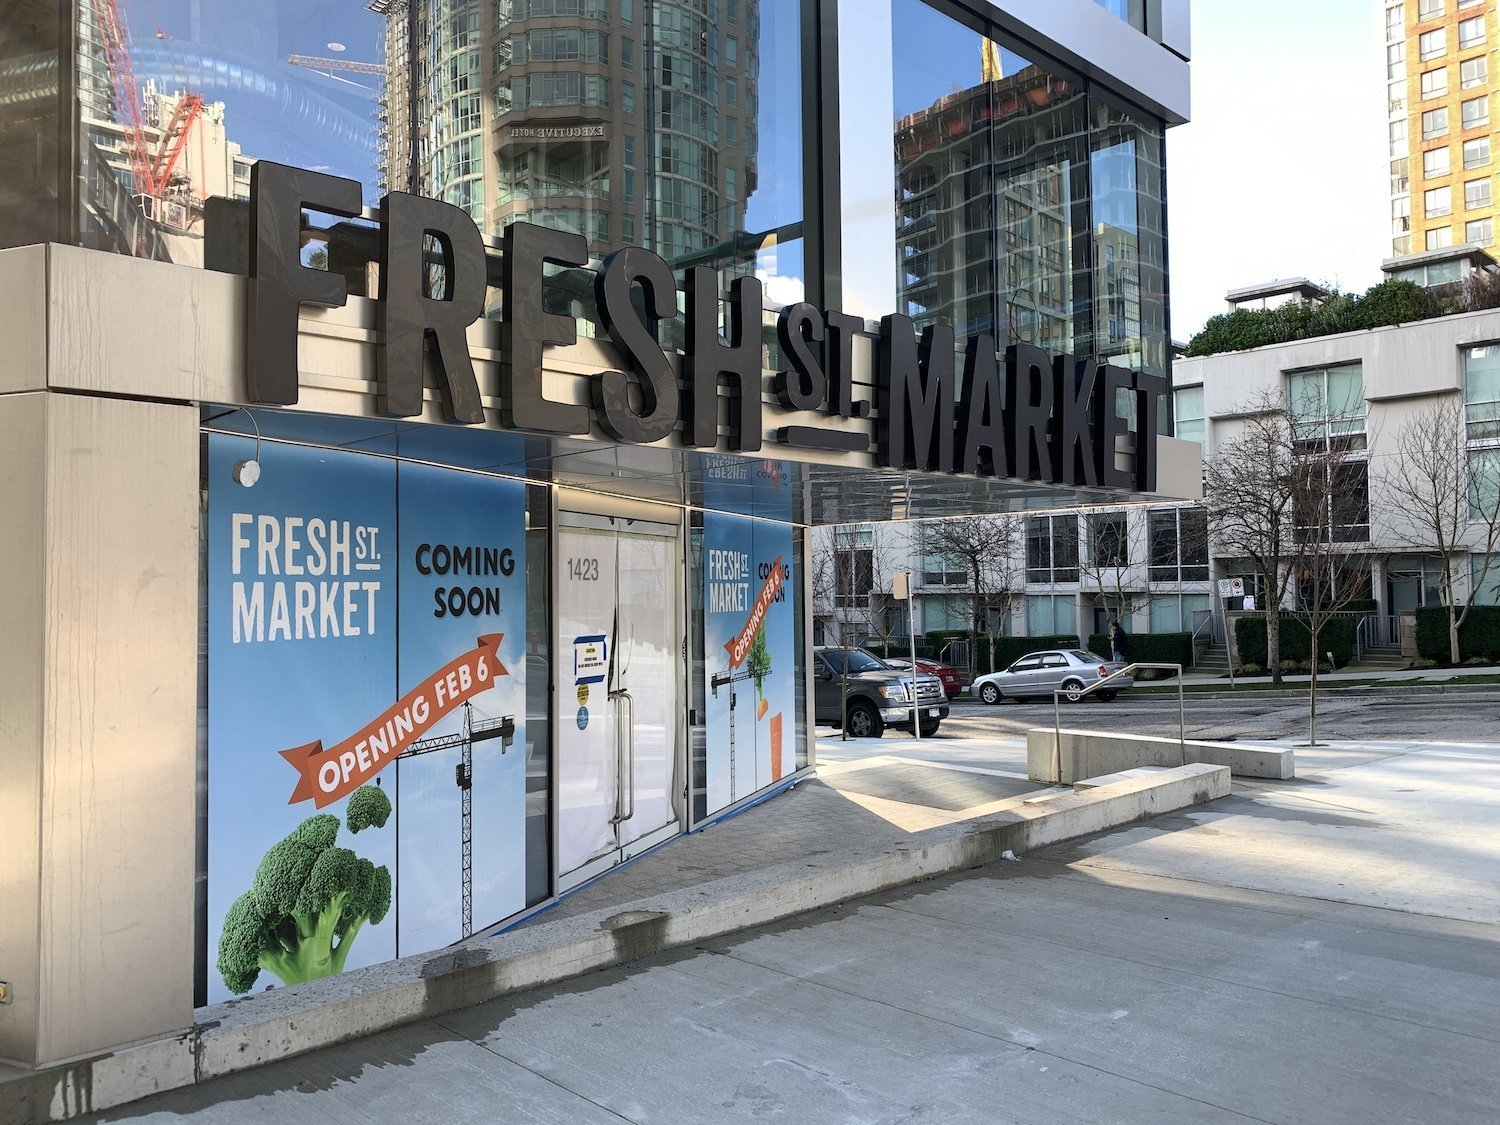 Fresh St Market London Drugs Open This Week At Vancouver House Urbanyvr